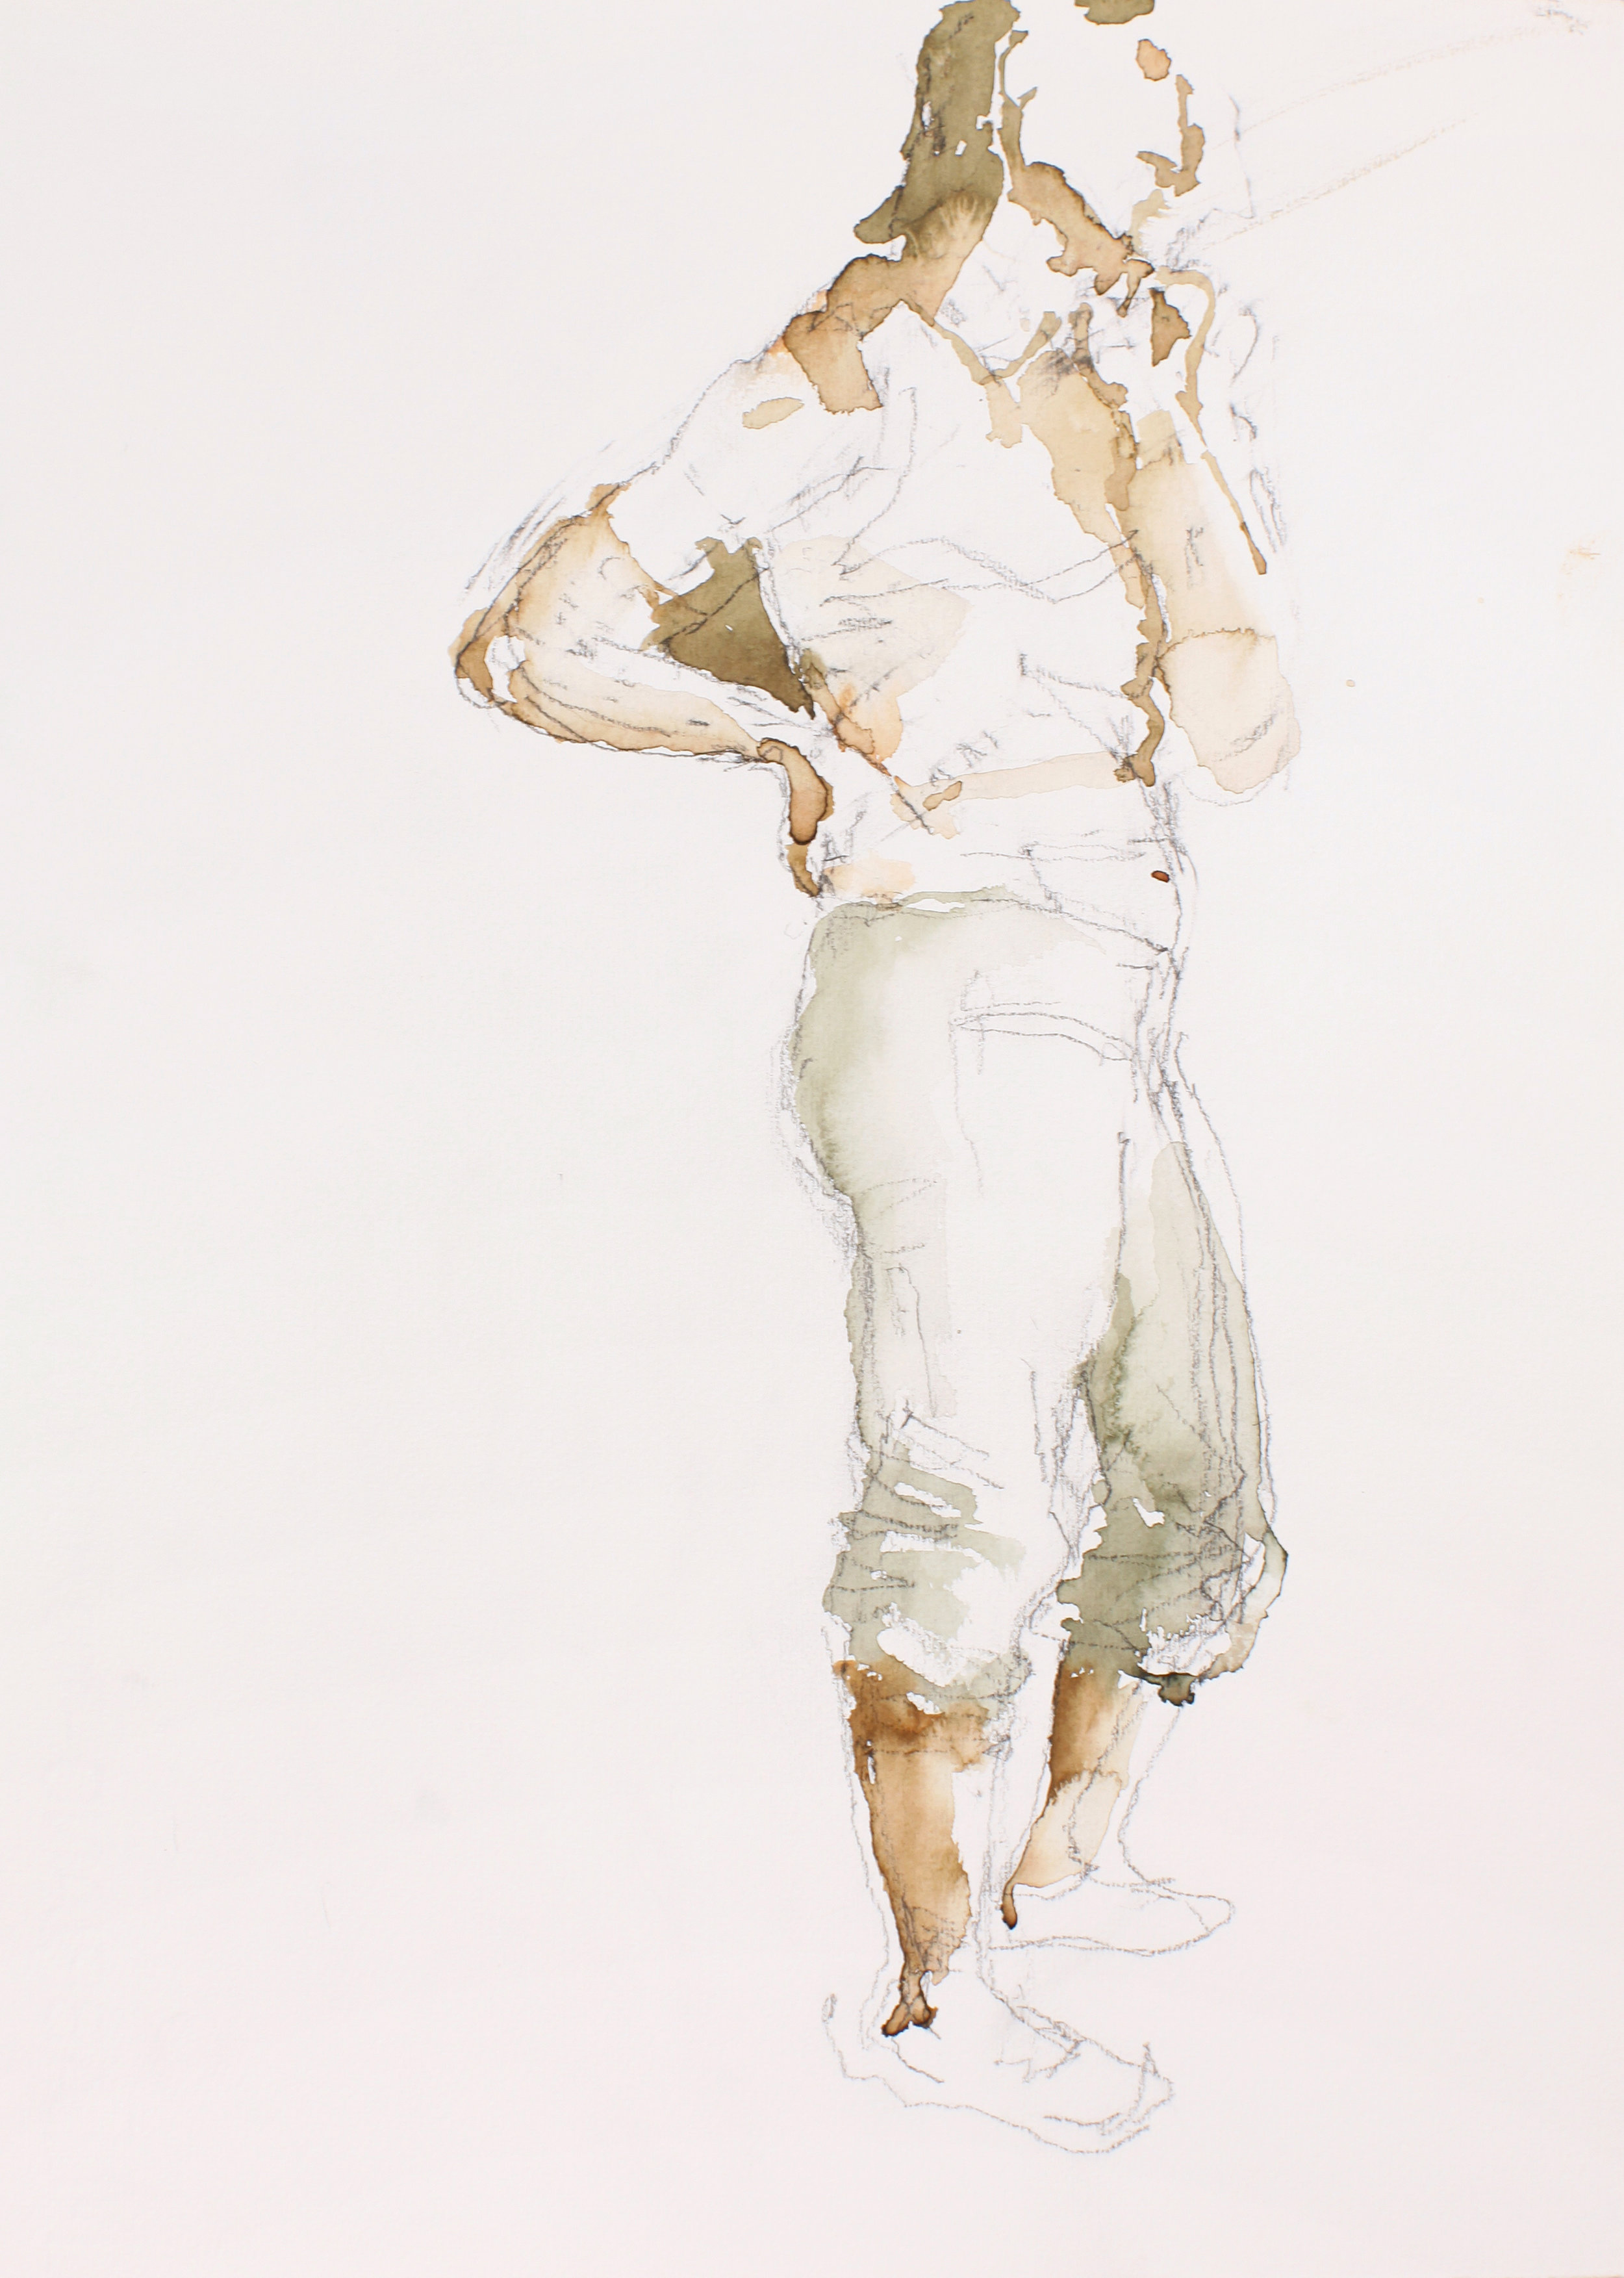 2005_Standing_Figure_With_Hands_on_Hips_Watercolour_and_pencil_on_paper_15x11inches_WPF103.jpg